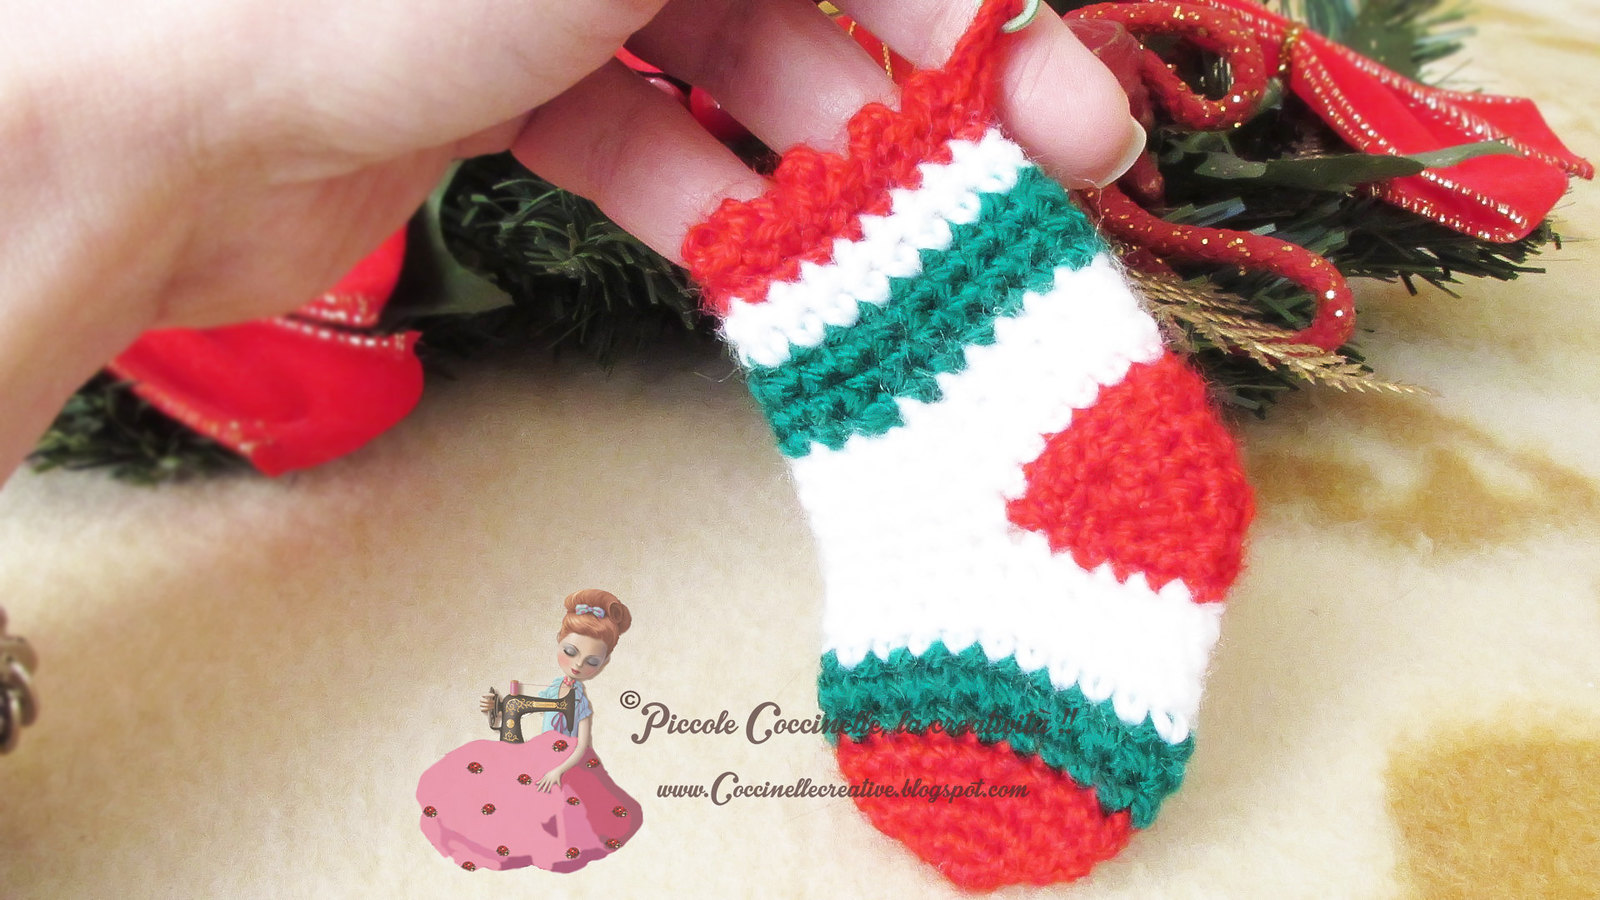 Coccinelle Creative Crochet Knitting Embroidery And Polymer Clay